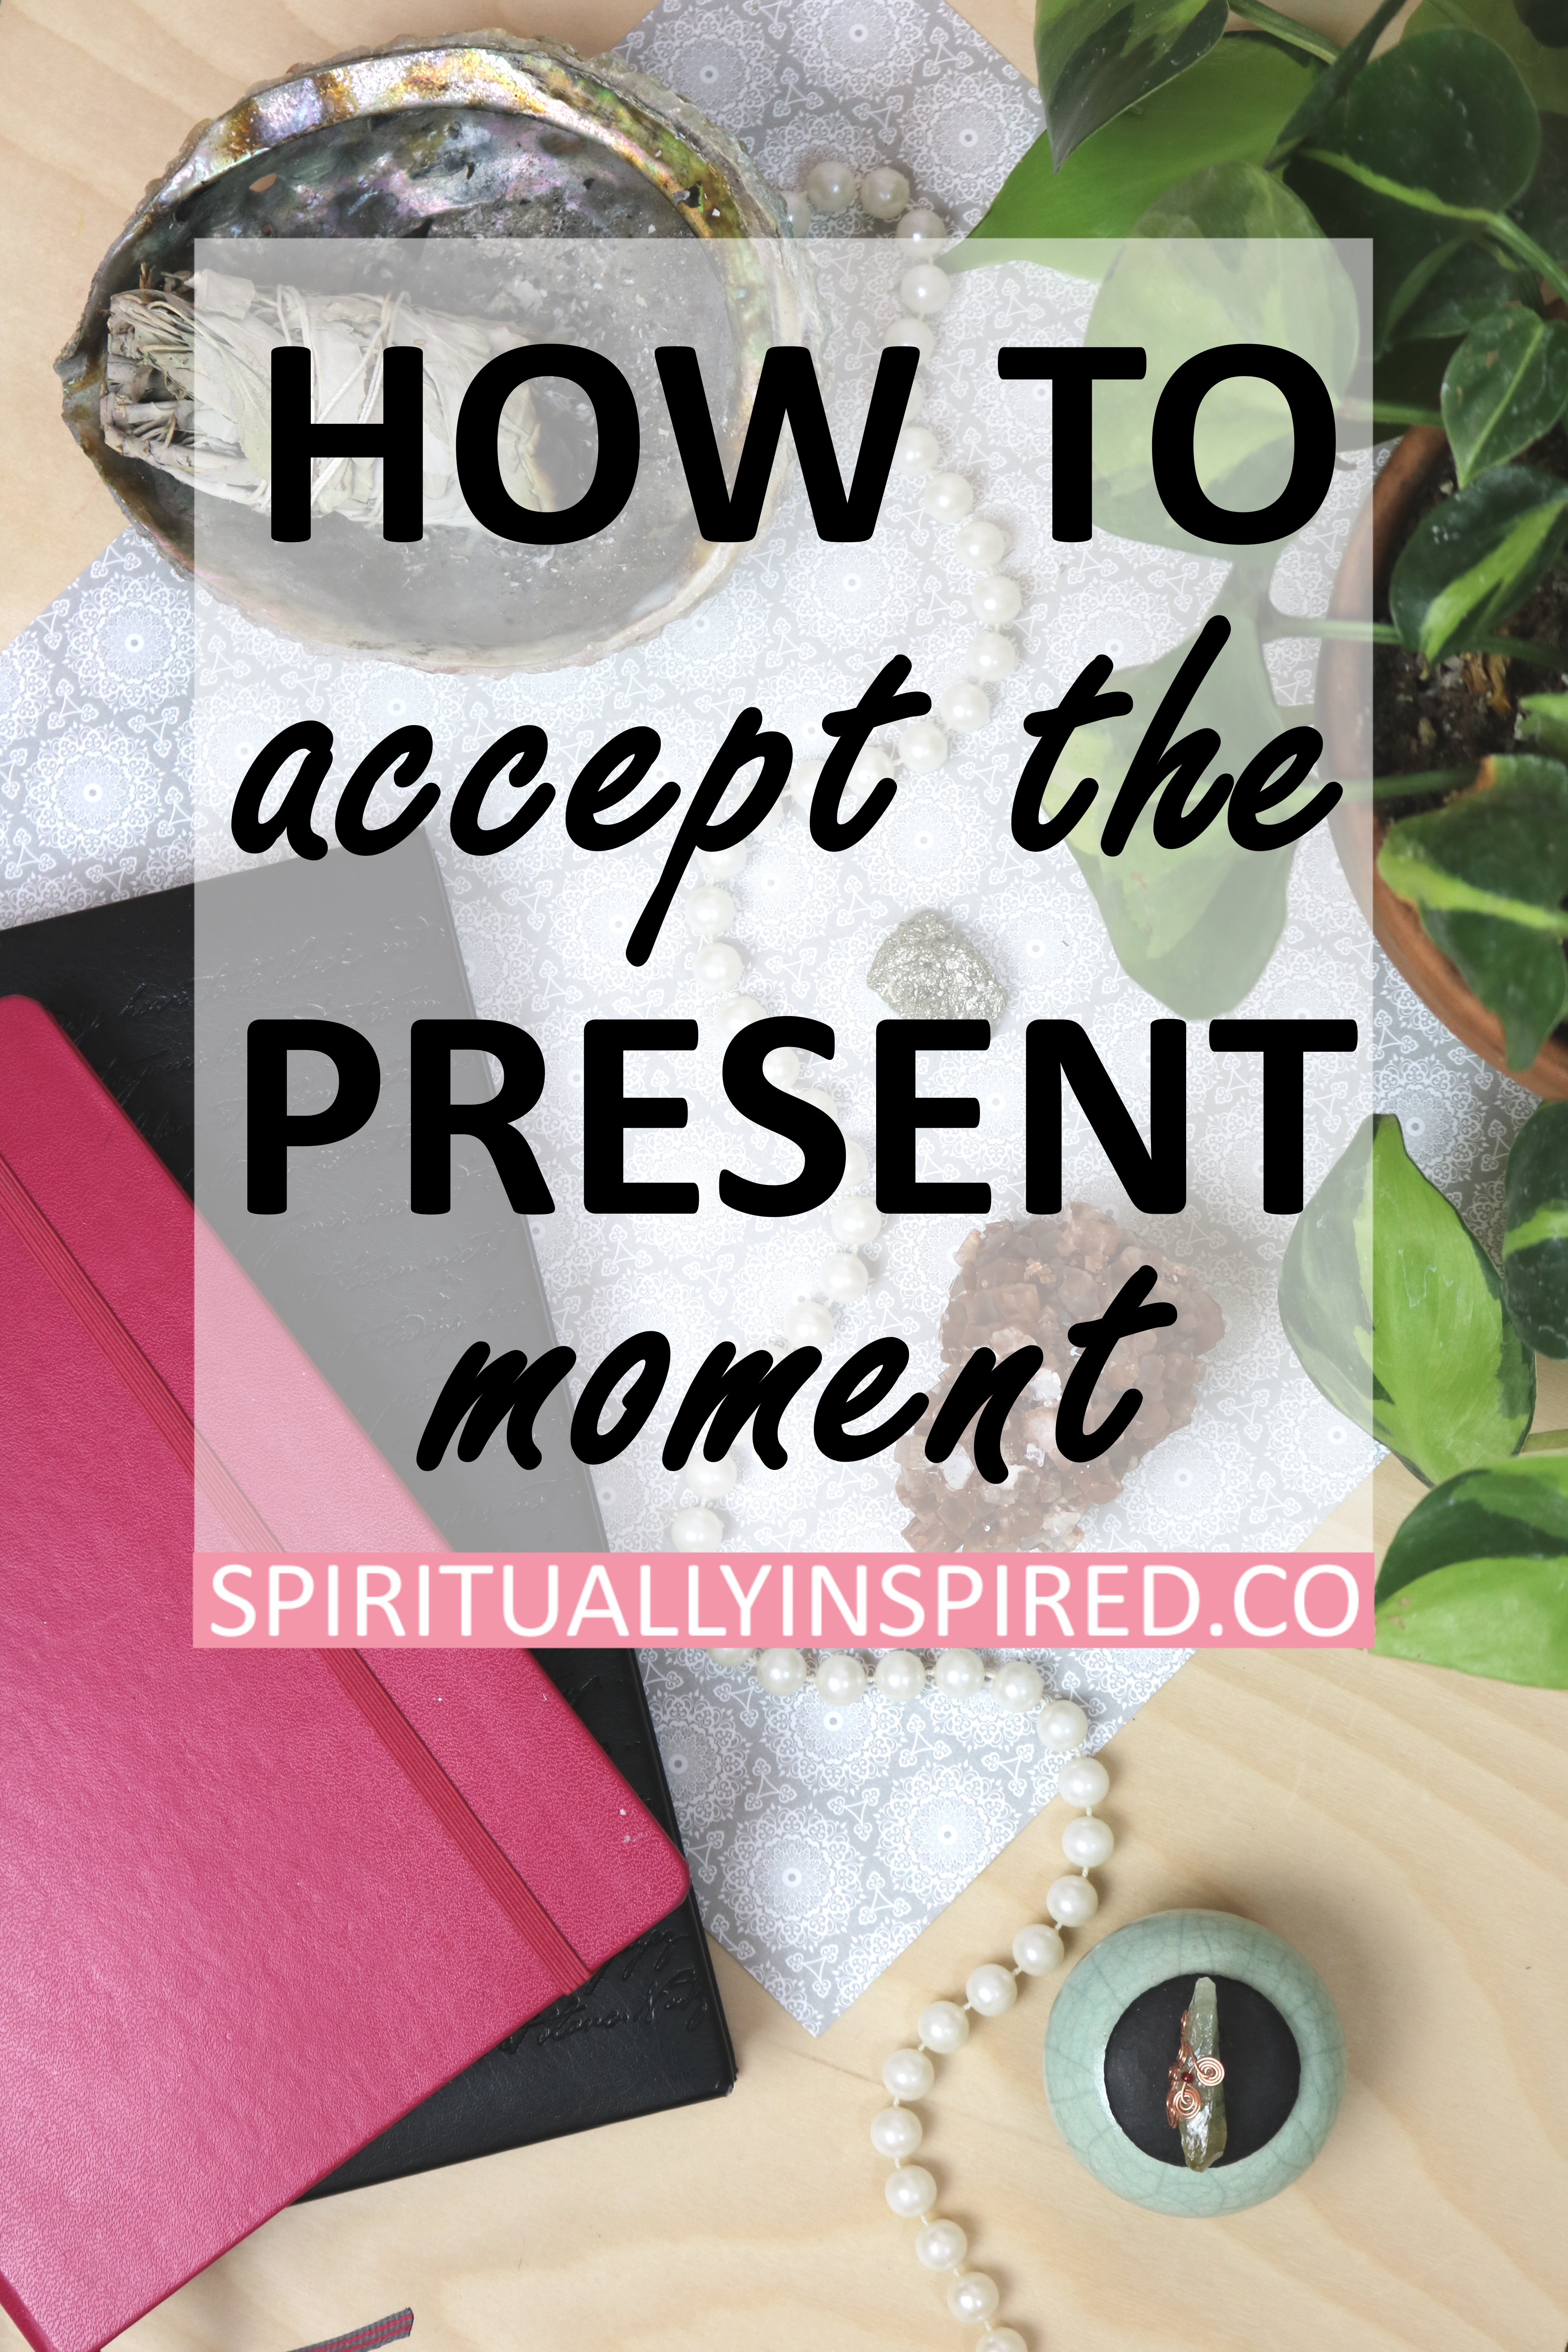 Acceptance is understanding that we are completely responsible for where we are right now, which allows us to learn, grow, and move forward.